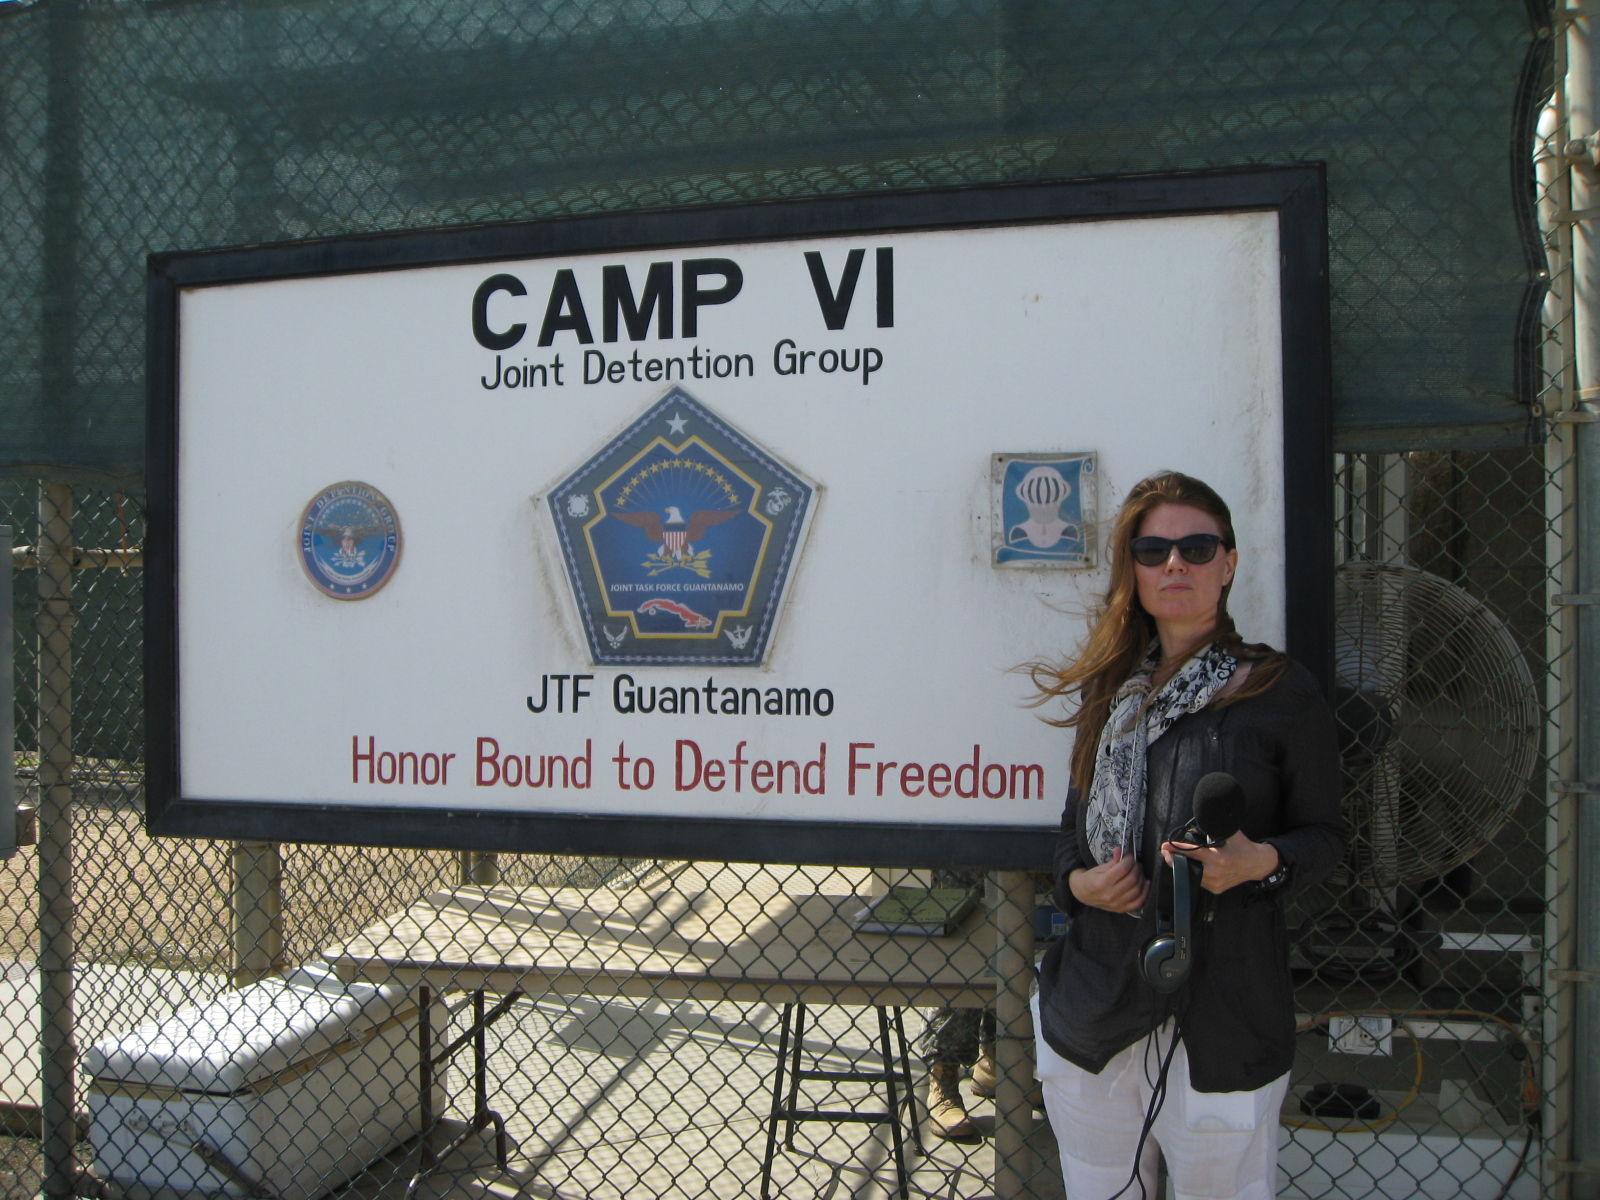 Before entering the controversial Camp VI, Guantanamo Bay to record for BBC broadcasts.